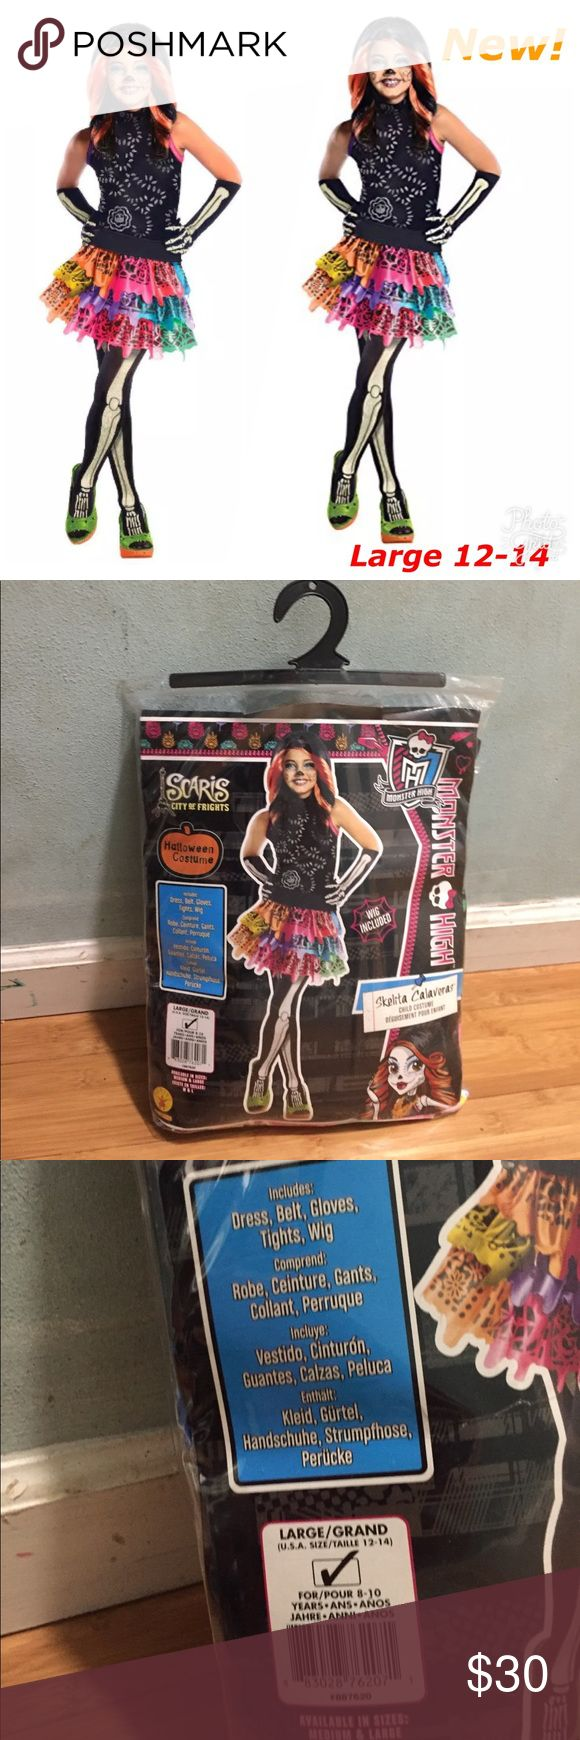 Skelita Calaveras Monster High Girls Costume New Includes:  -Dress -Belt  - Gloves -Tights -Wig  Brand new!   Large 12-14 For 8-10 Years Costumes Halloween